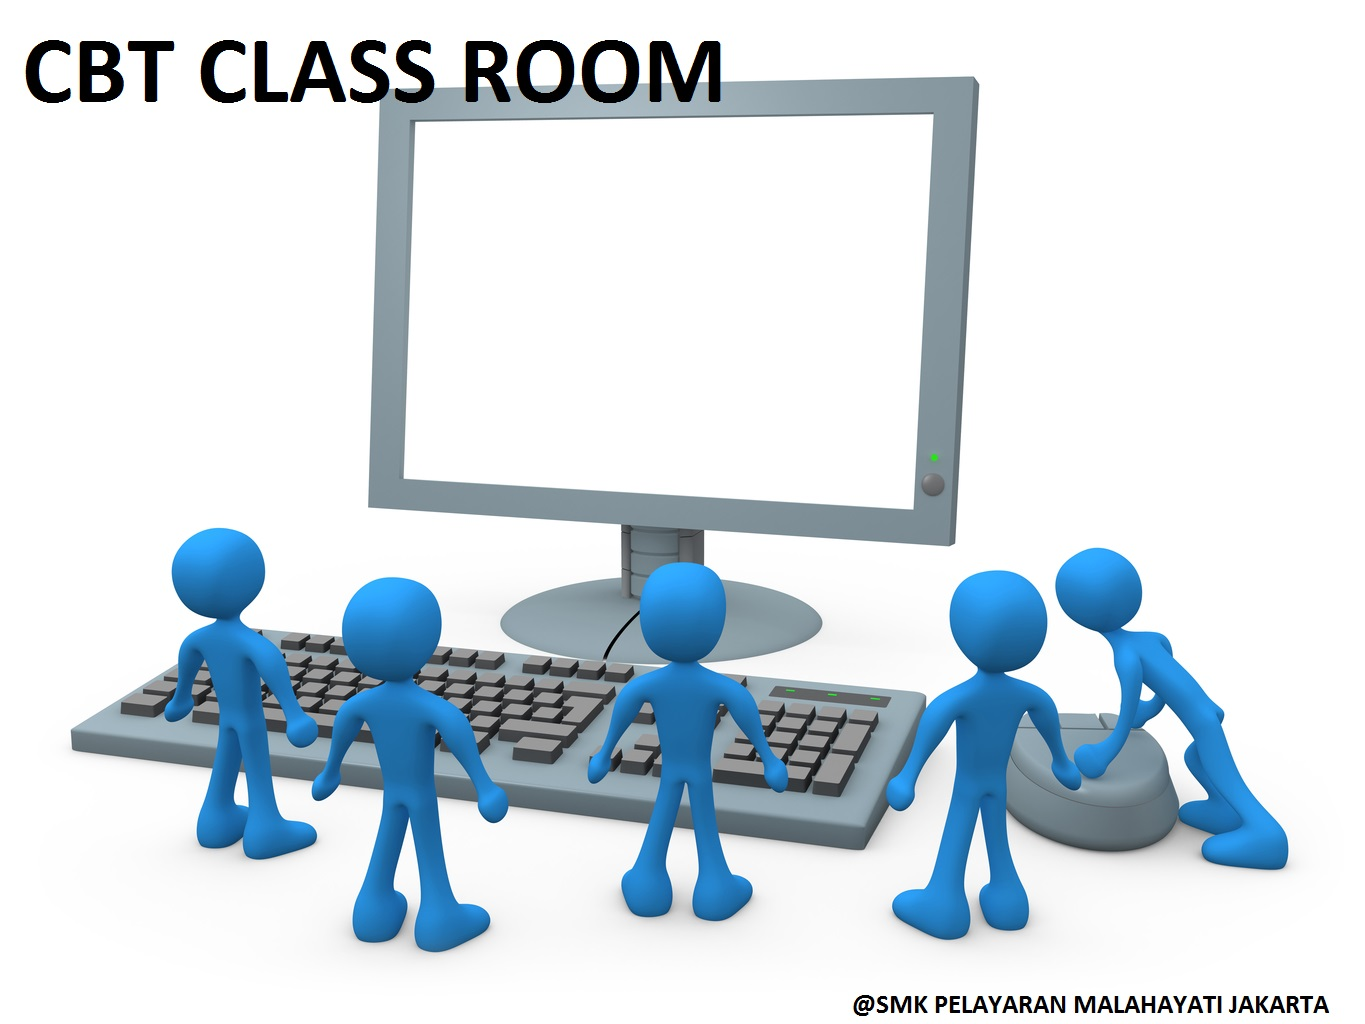 computer-based-training-clipart-1